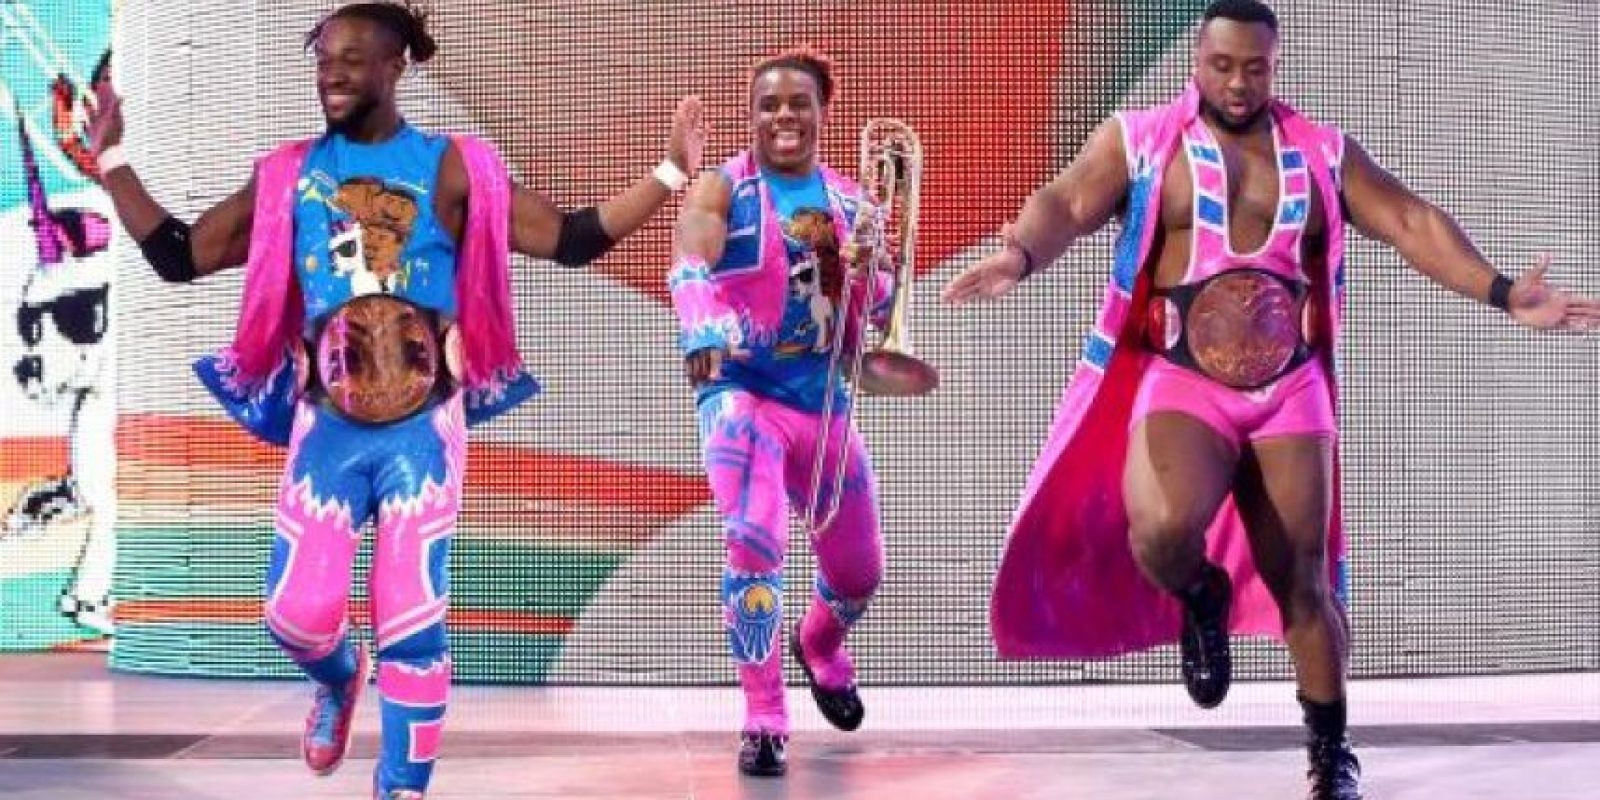 The New Day Foto:WWE